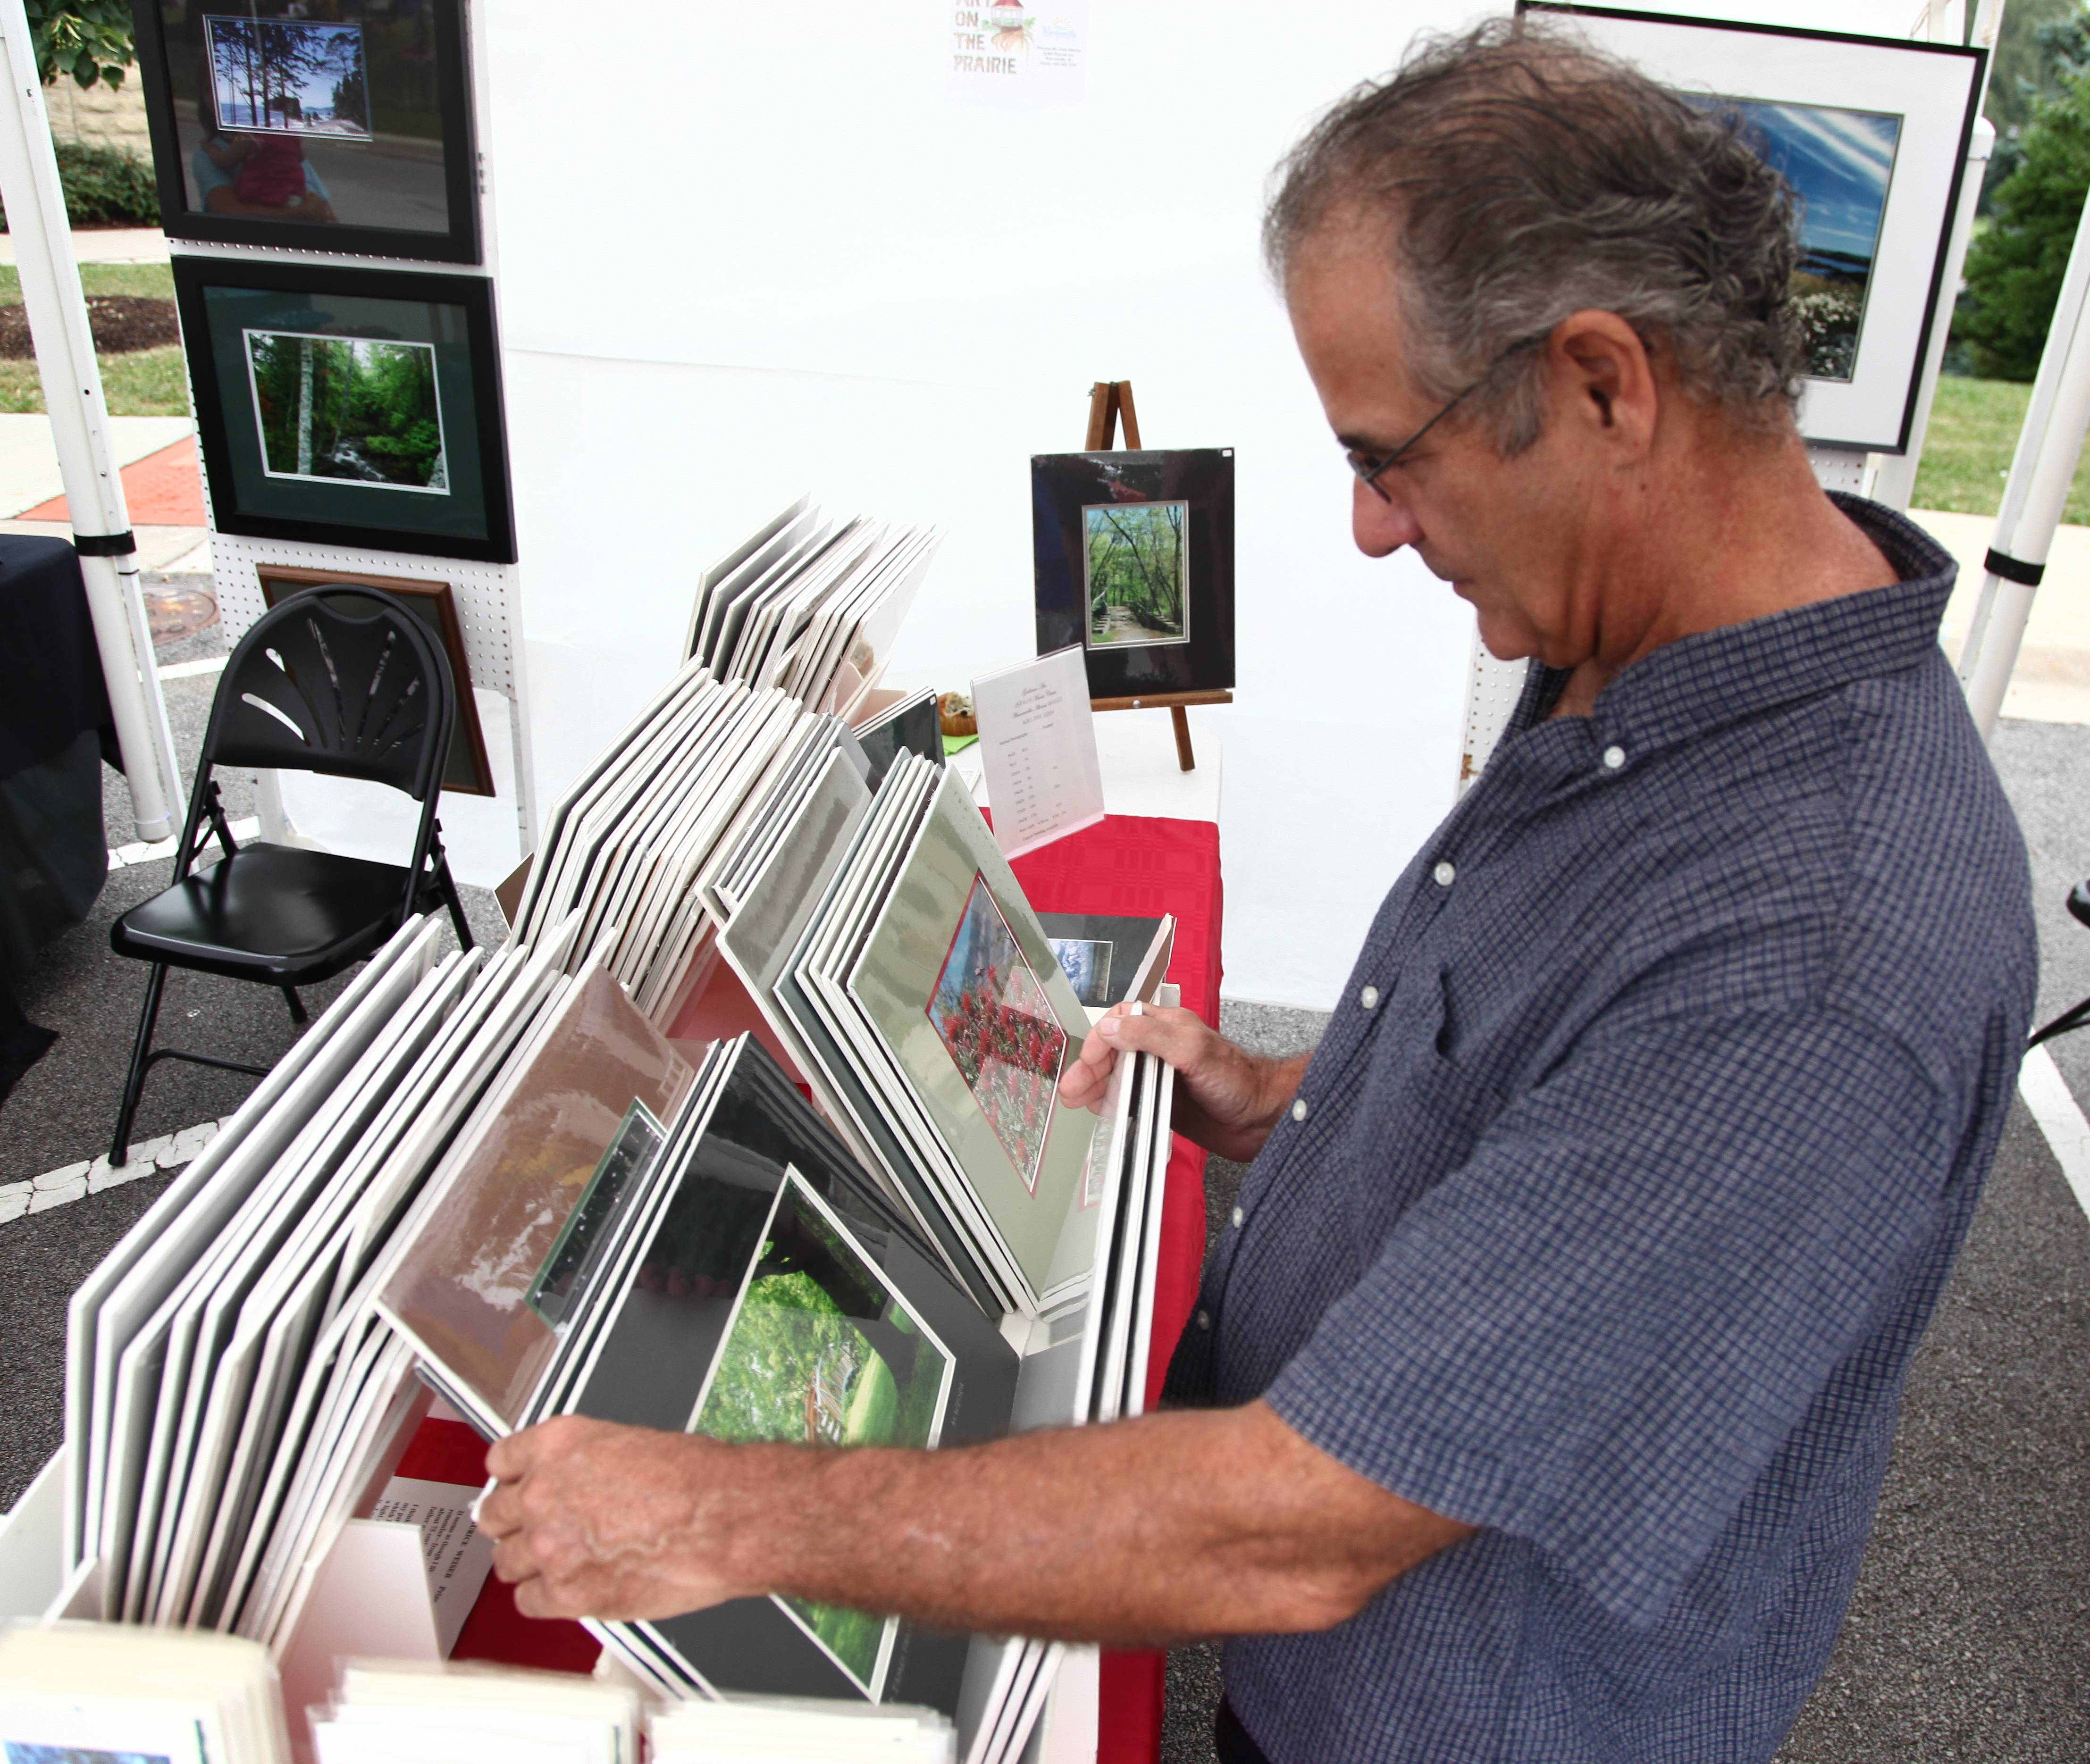 Art lovers can browse the works of about 30 artists while listening to a variety of music this weekend during Warrenville's Art on the Prairie/Music Festival.